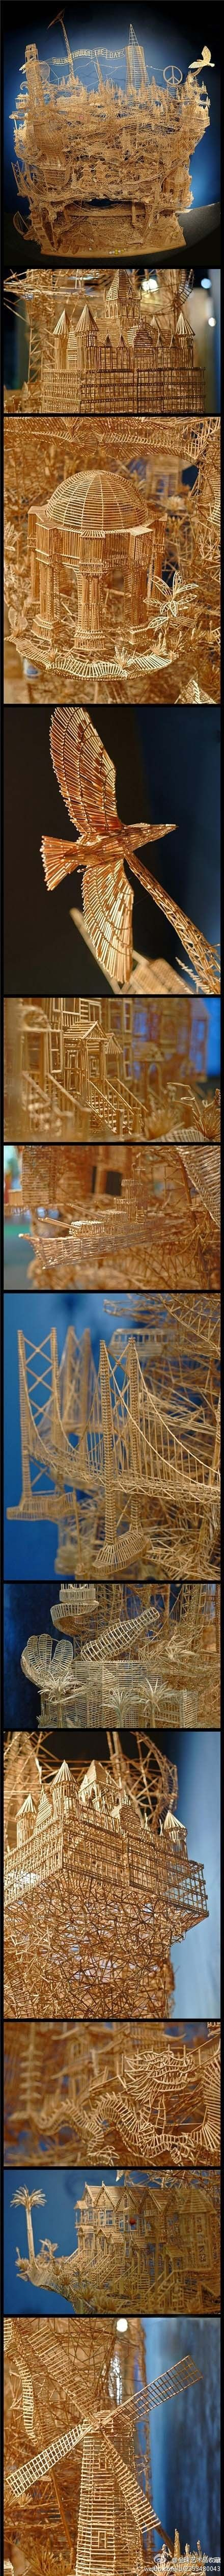 sculpture made out of toothpick - unbelievable + mind blowing!